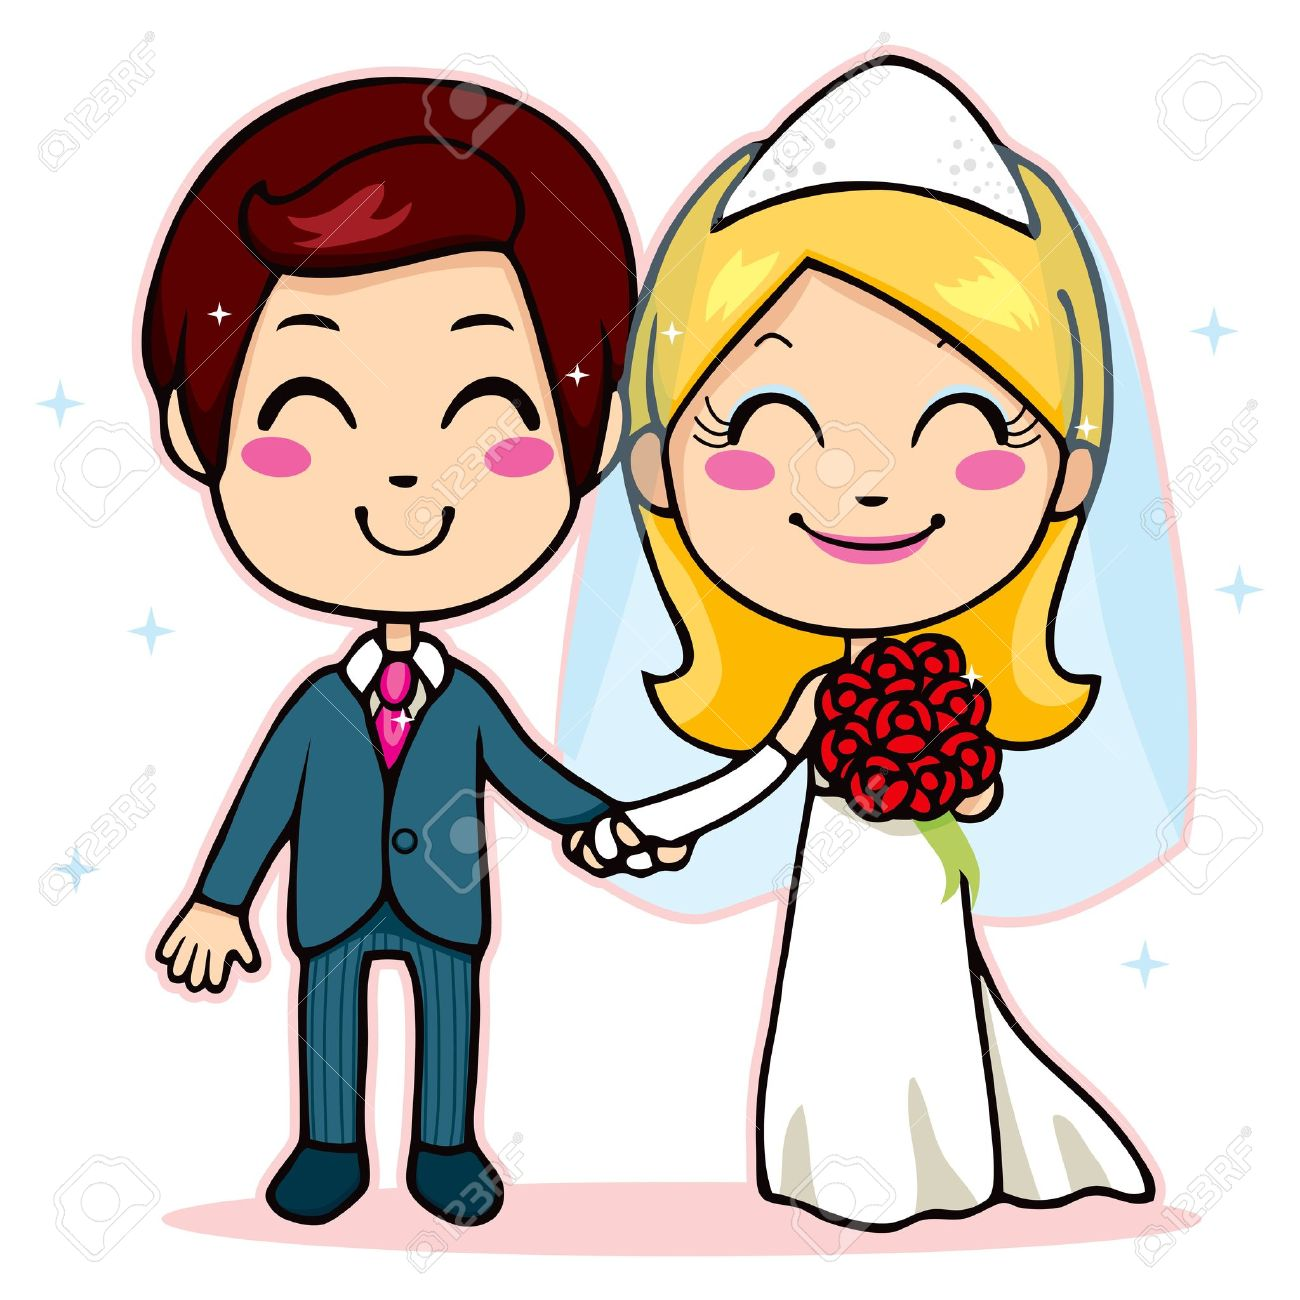 Cute Wedding Couple Clipart.